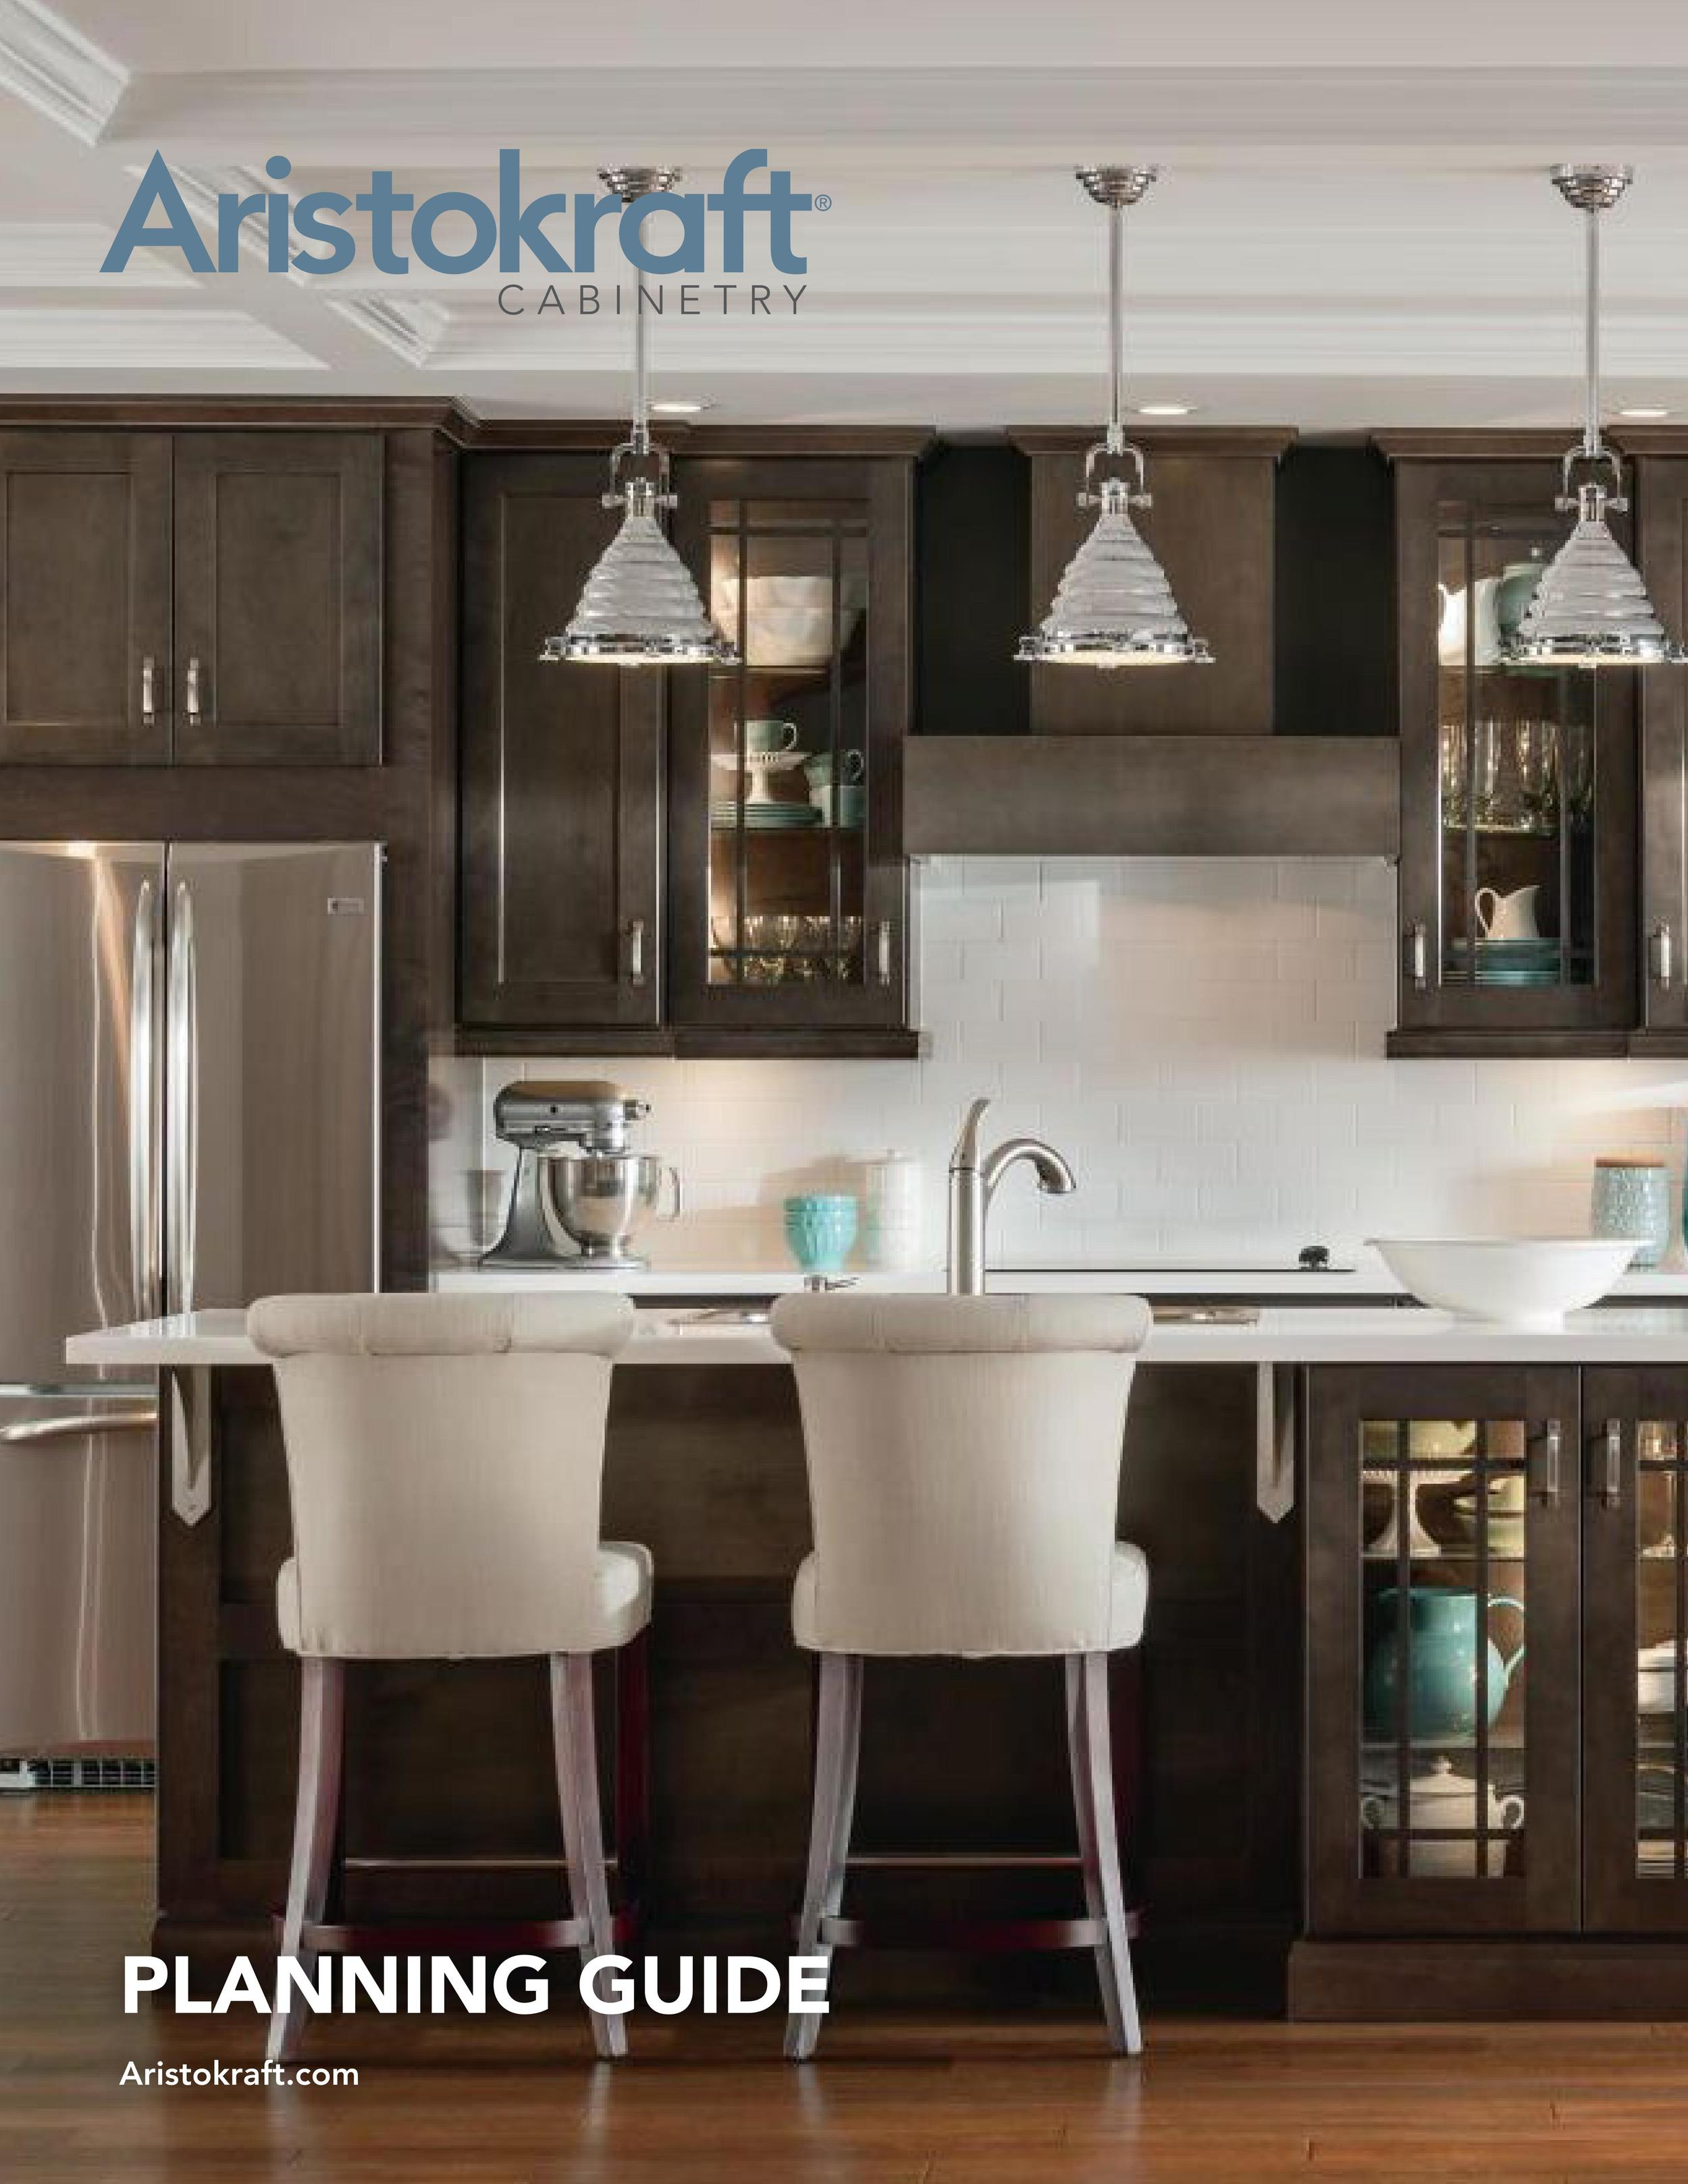 kitchen experts danze faucets the andco kitchens baths inc free aristokraft planning guide